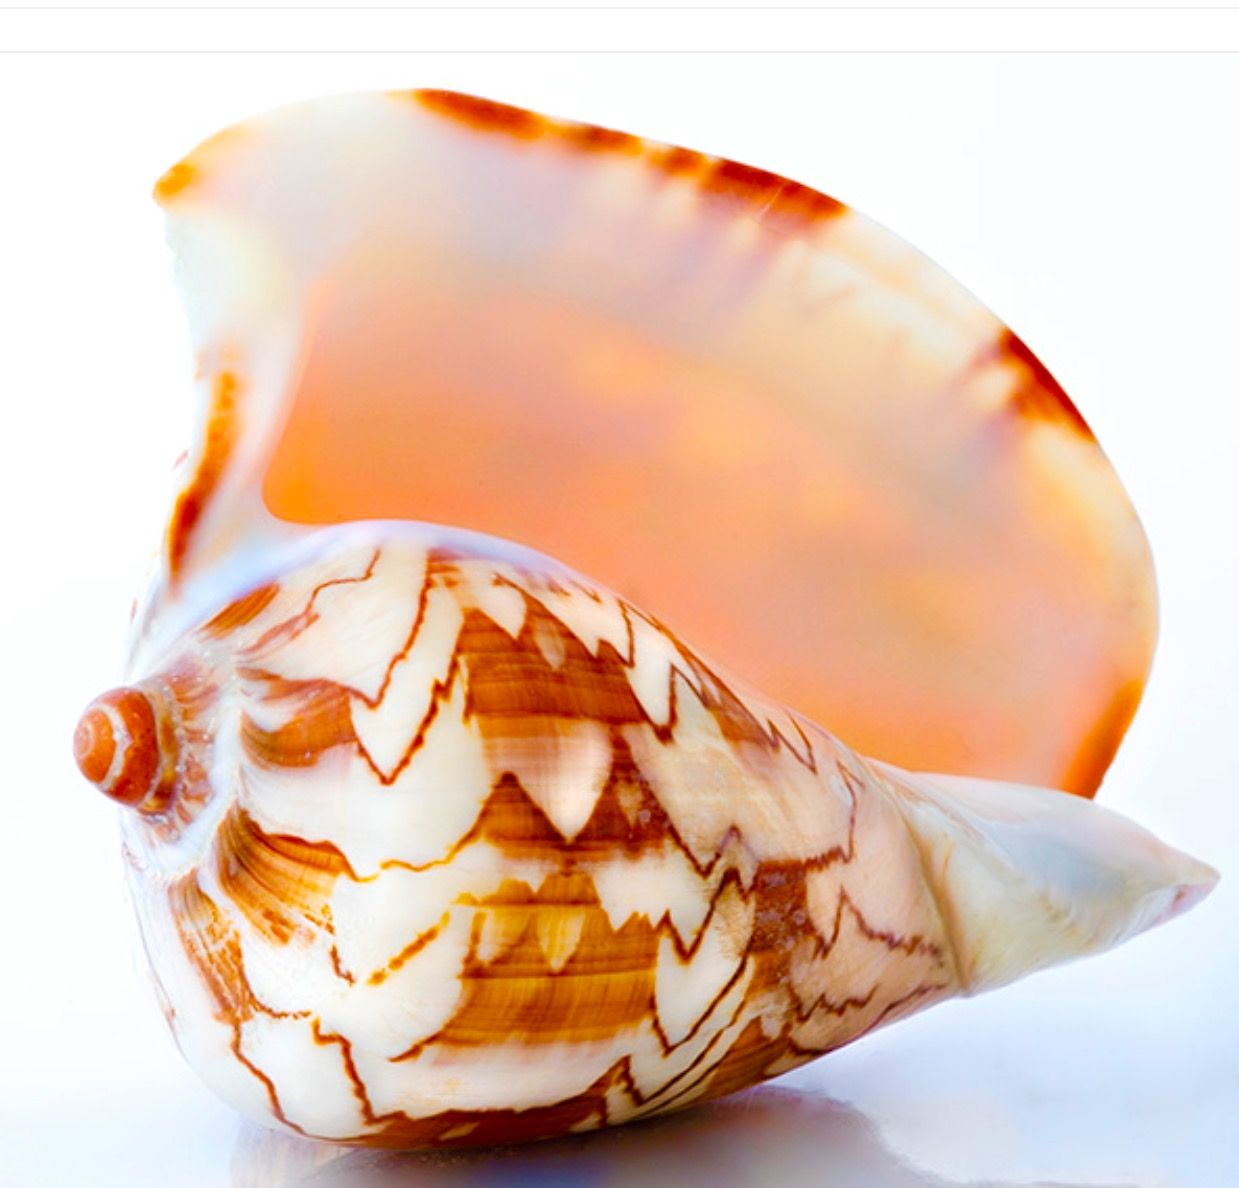 S. shell